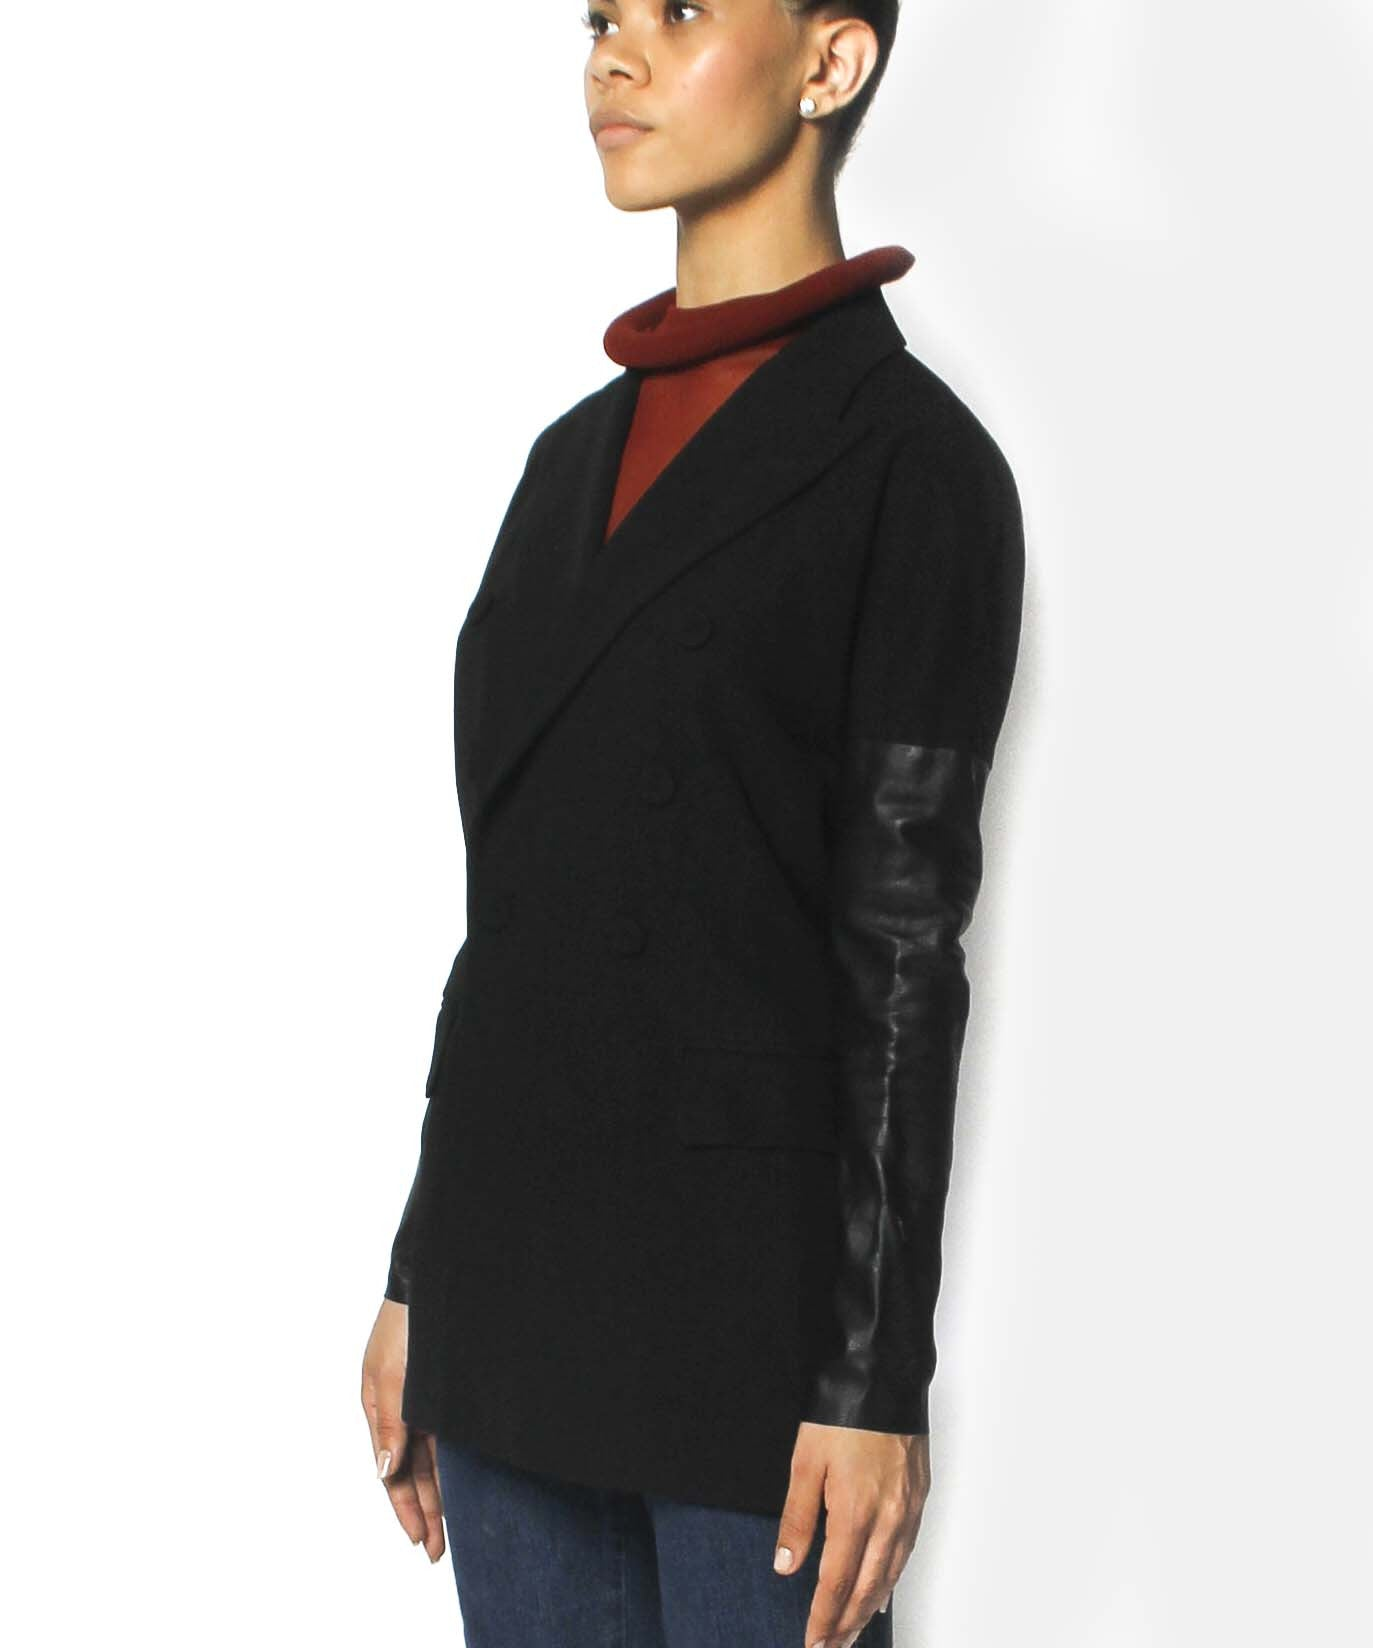 Jean Paul Gaultier Black Fine Wool Blazer With Leather Sleeves - C.Madeleine's